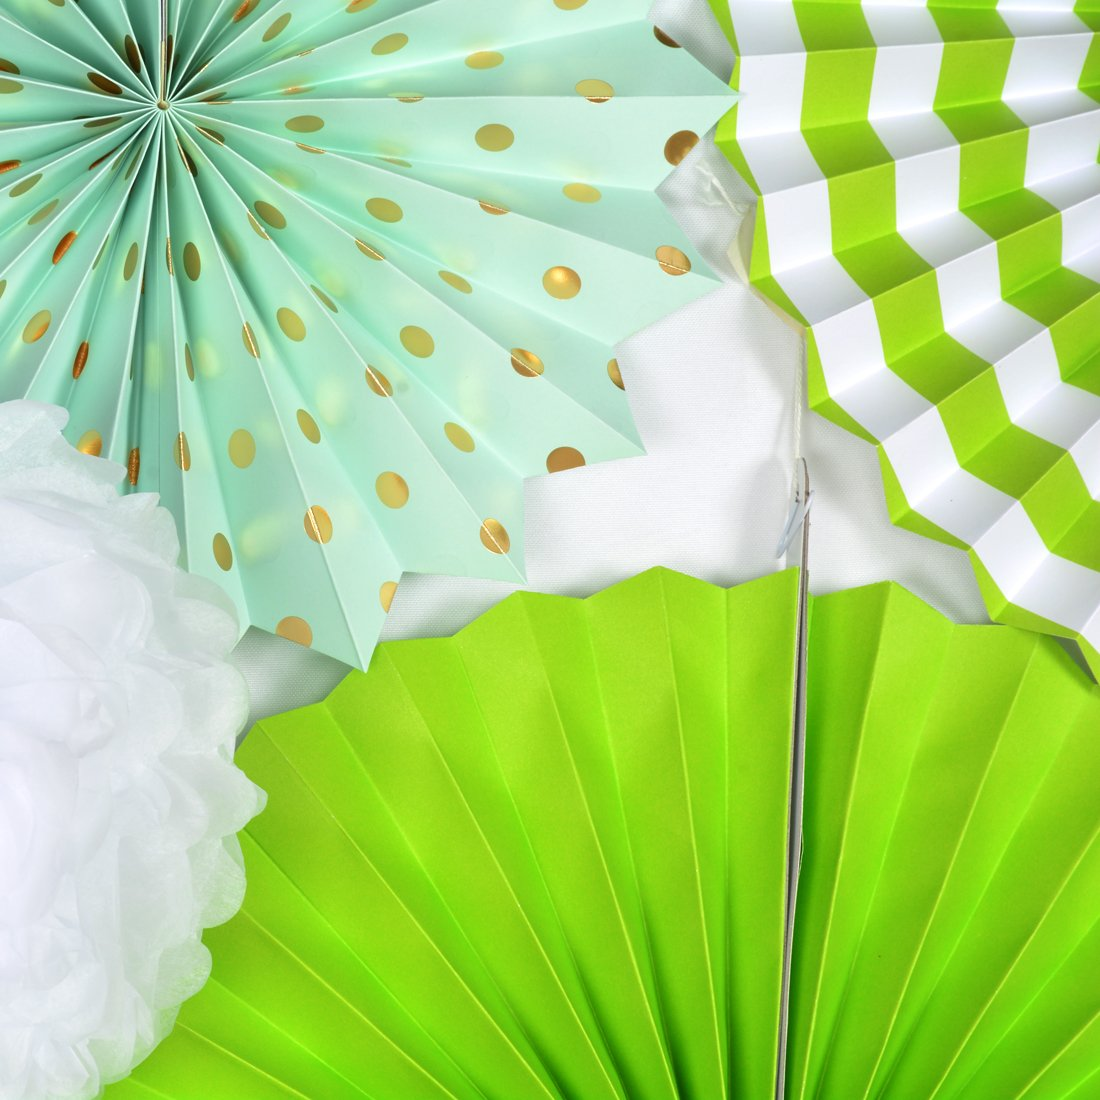 17pcs Yellow Party Decorations Paper Fans Tissue Paper Pom Poms Mint Cream for Birthday Wedding Baby Shower Baptism Home Room Decor